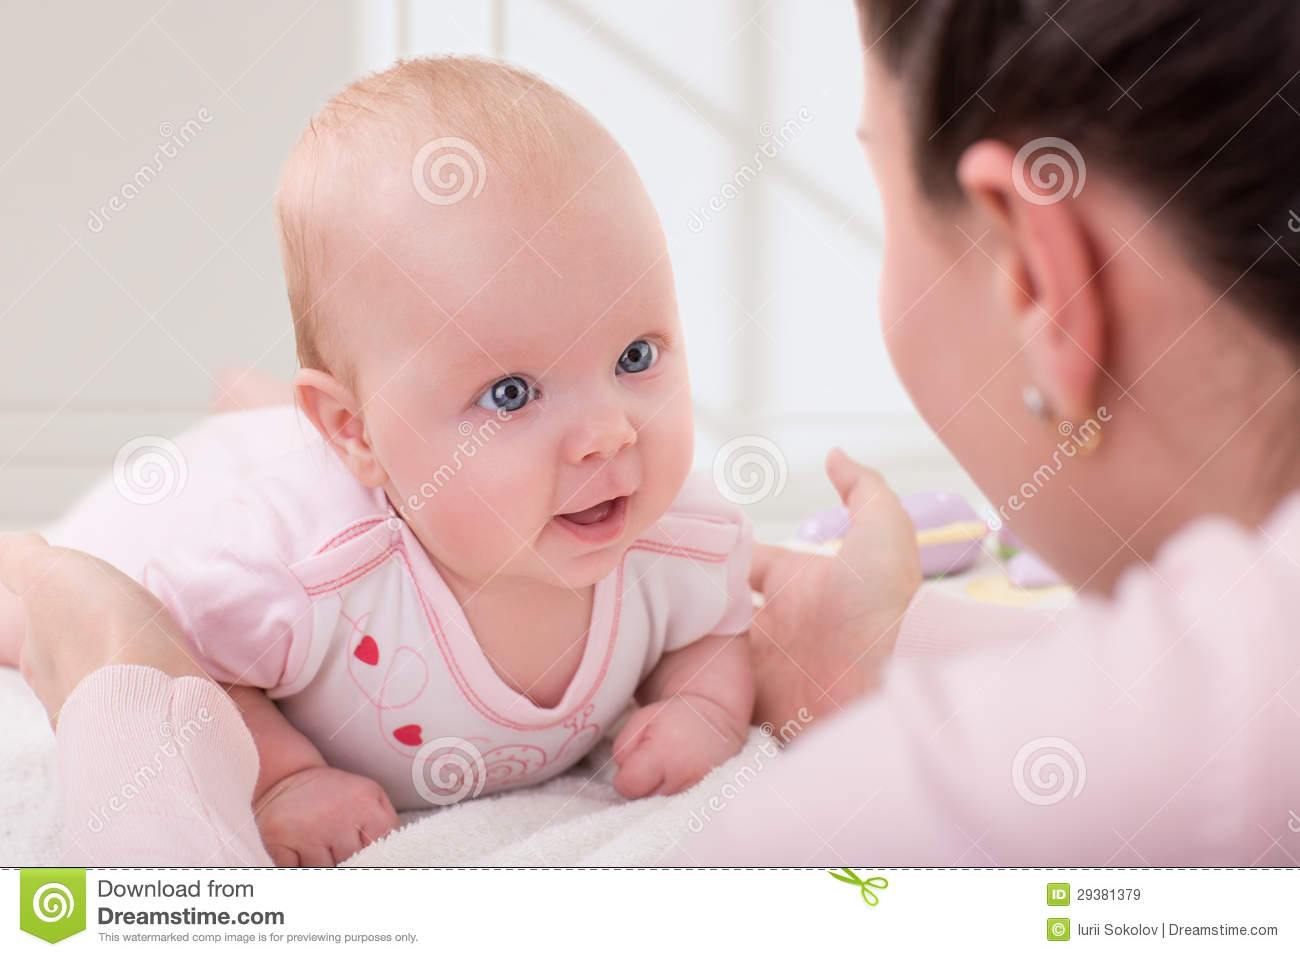 How Make Infant Laugh